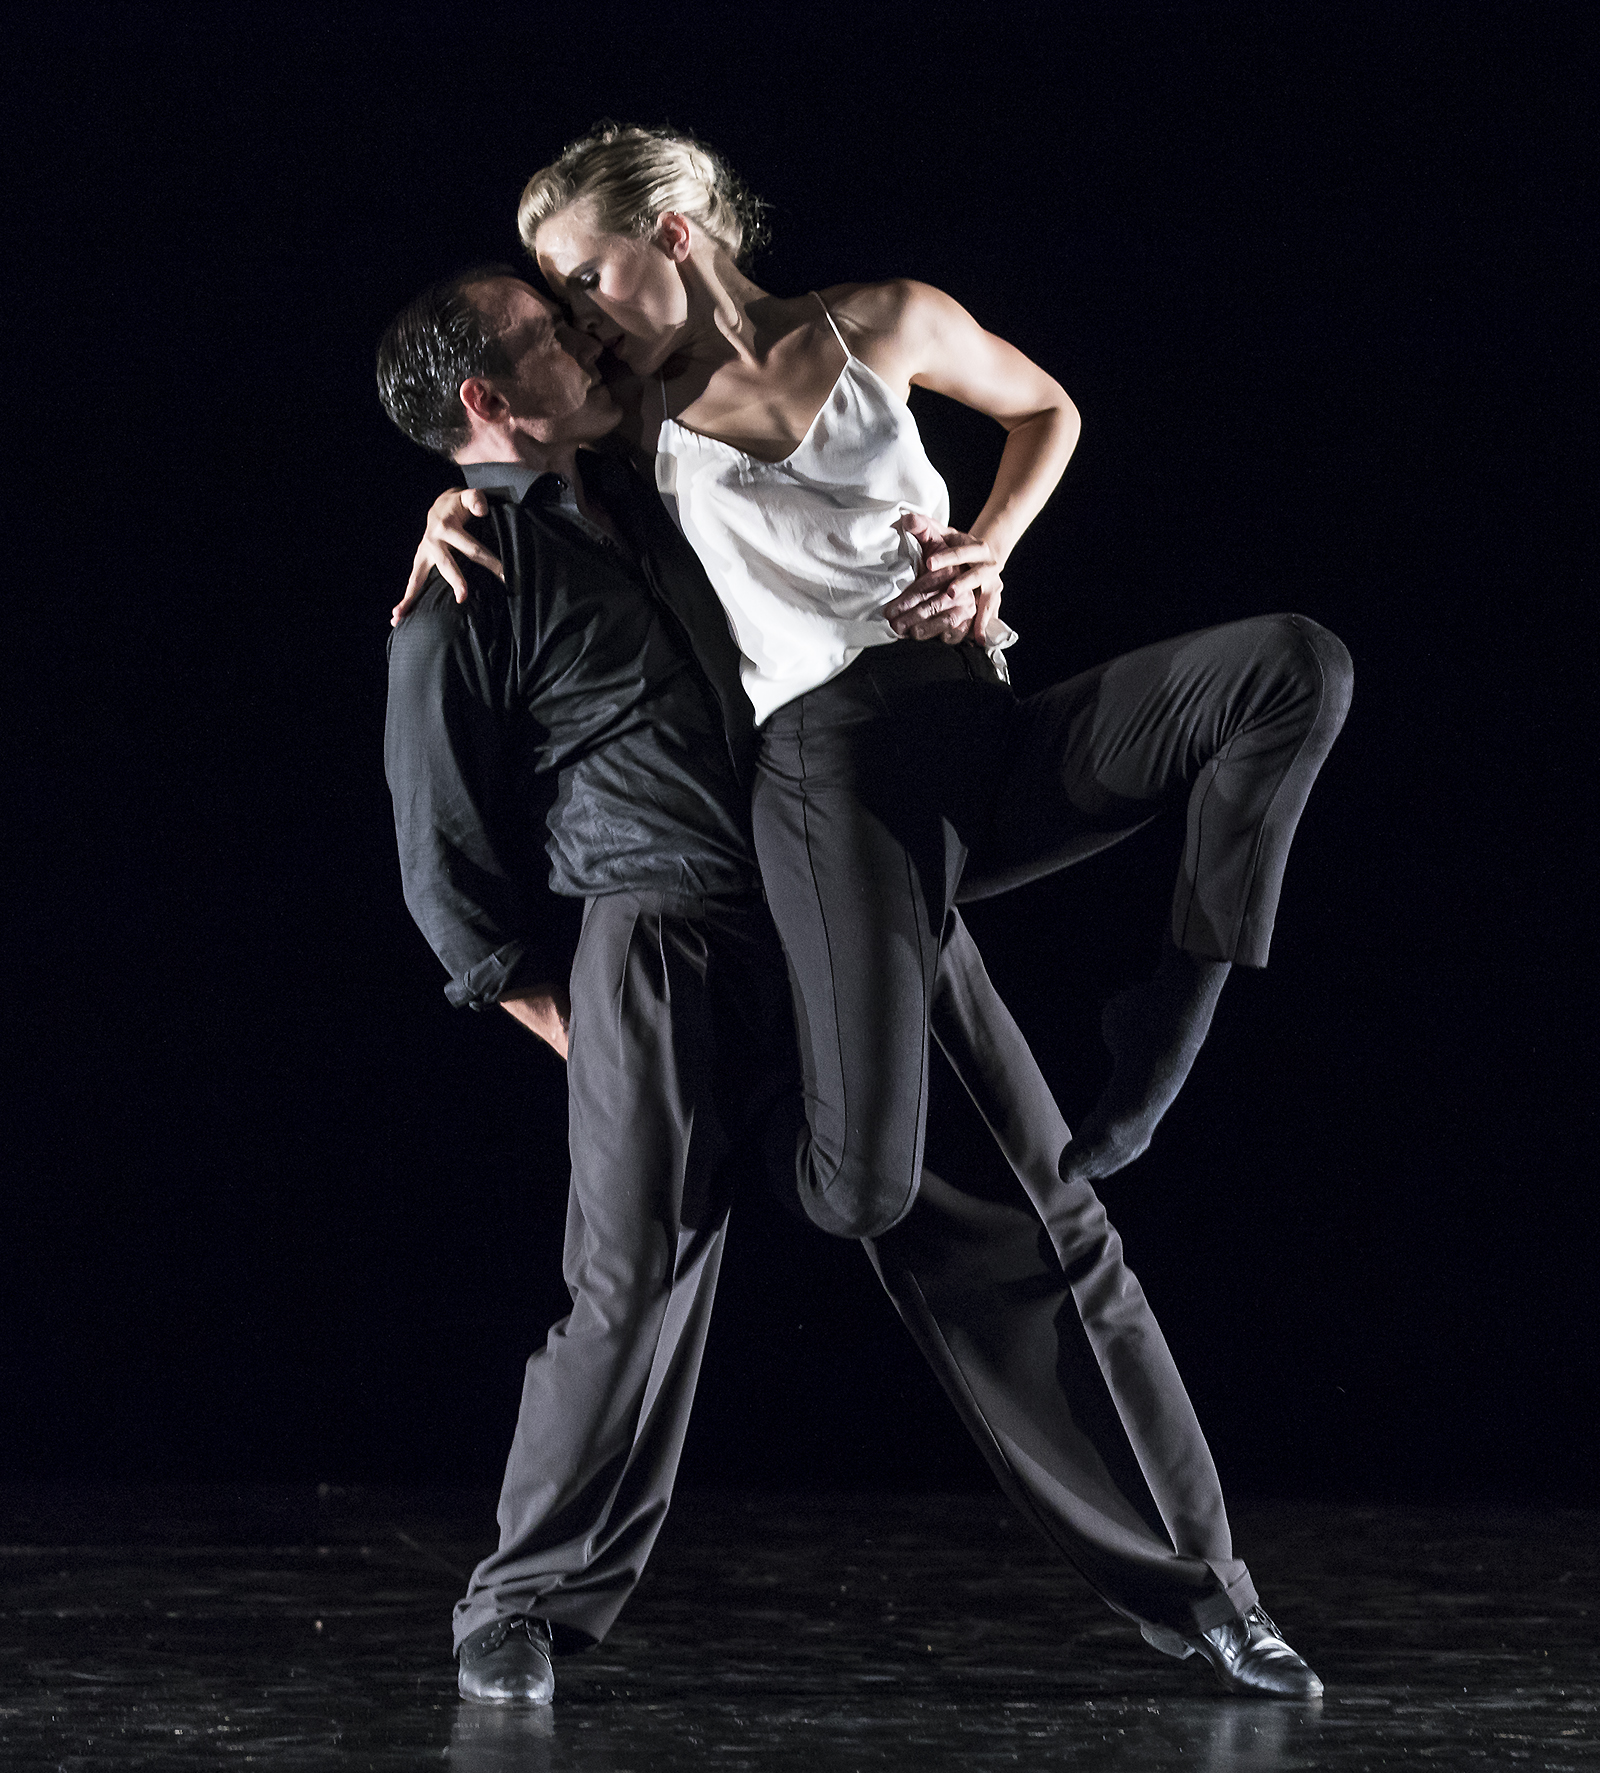 the evening's most brilliant encounter, the finale between Saxon and Moreno. This was as thrilling as performance gets — the great elegance of the tango master meeting the headlong exuberance and risk-taking of youth. - CHARLES DONELAN, Santa Barbara Independent